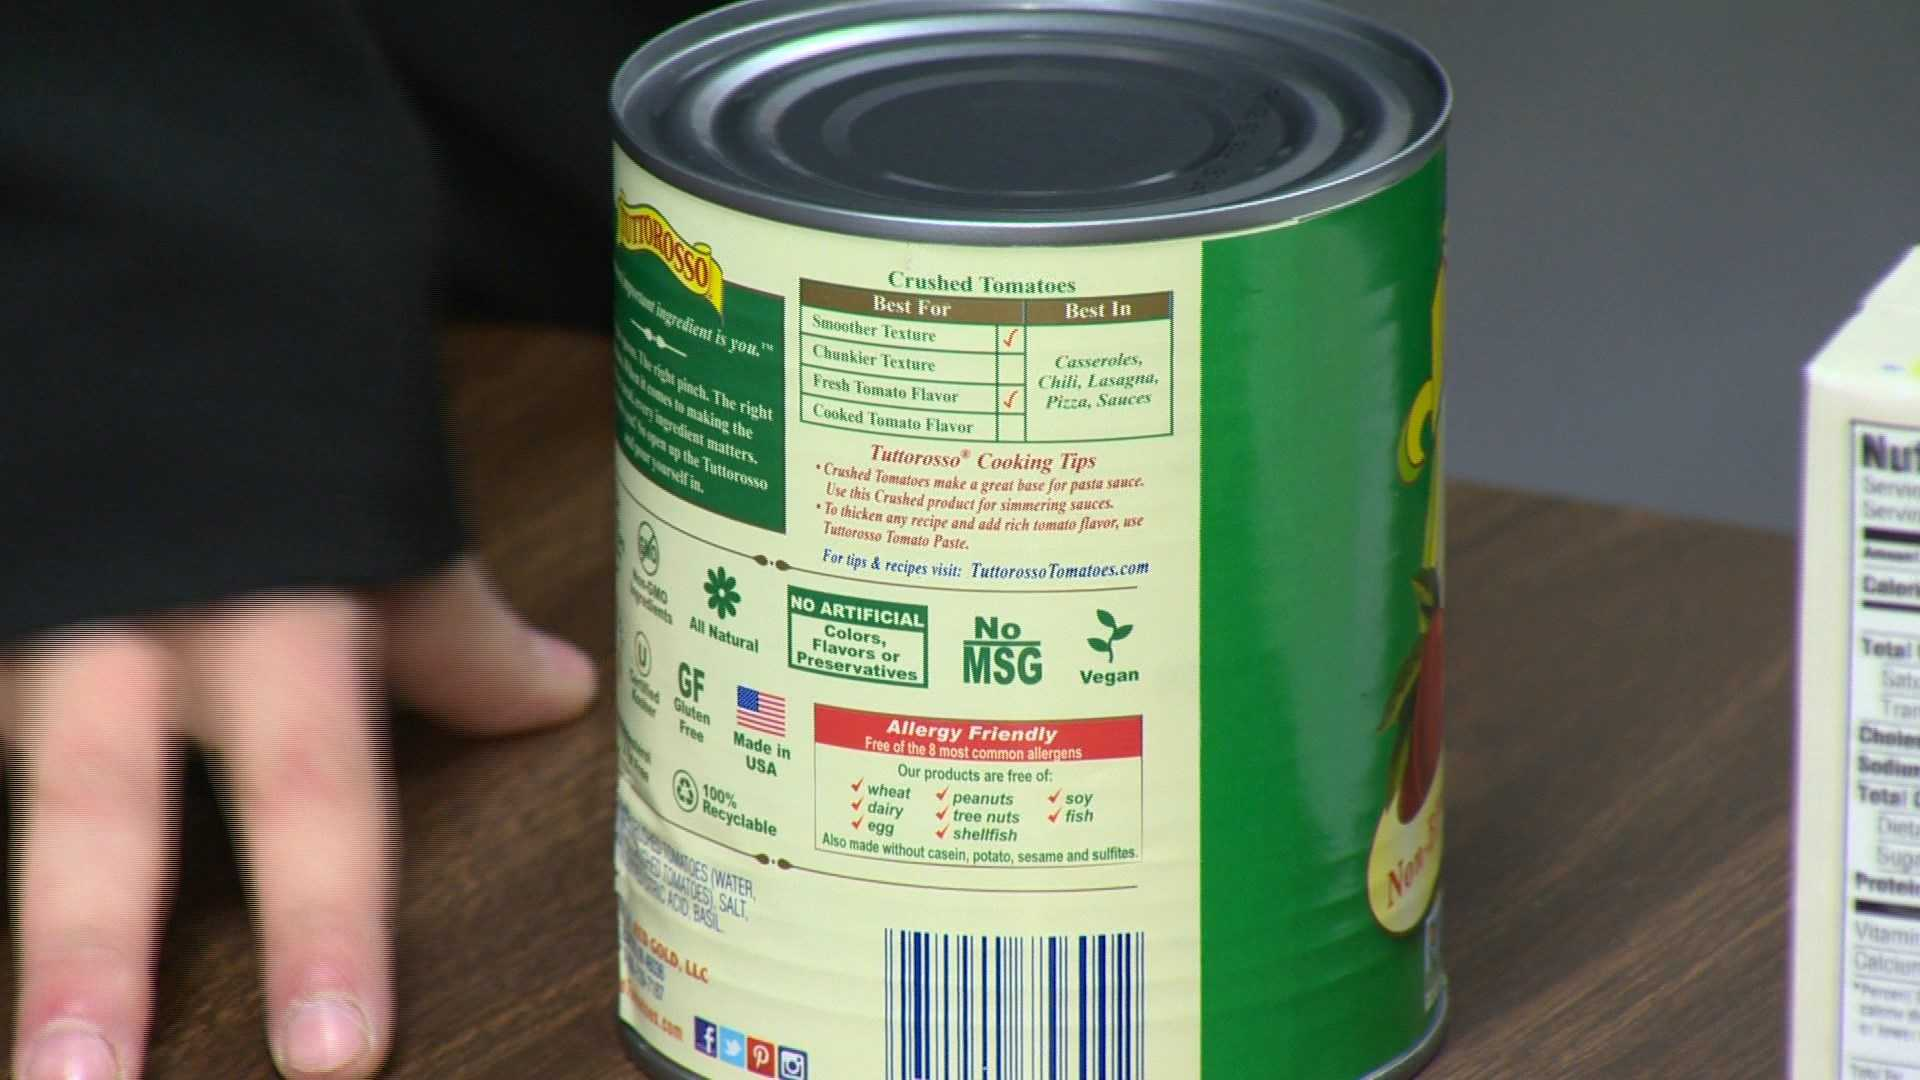 A new study found that two out of every cans of canned food contain BPA in it.